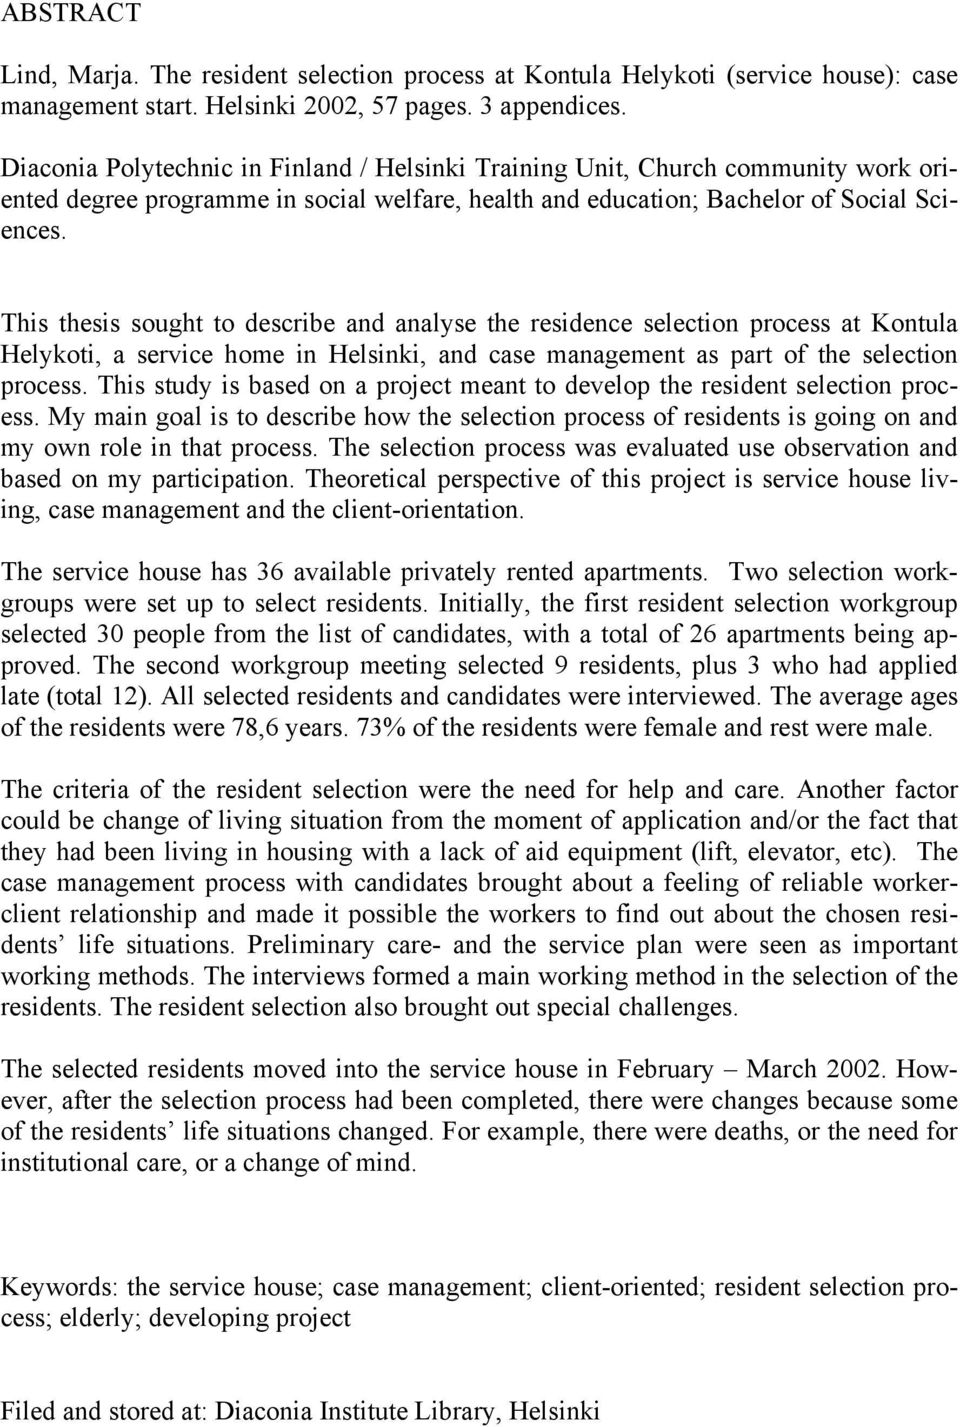 This thesis sought to describe and analyse the residence selection process at Kontula Helykoti, a service home in Helsinki, and case management as part of the selection process.